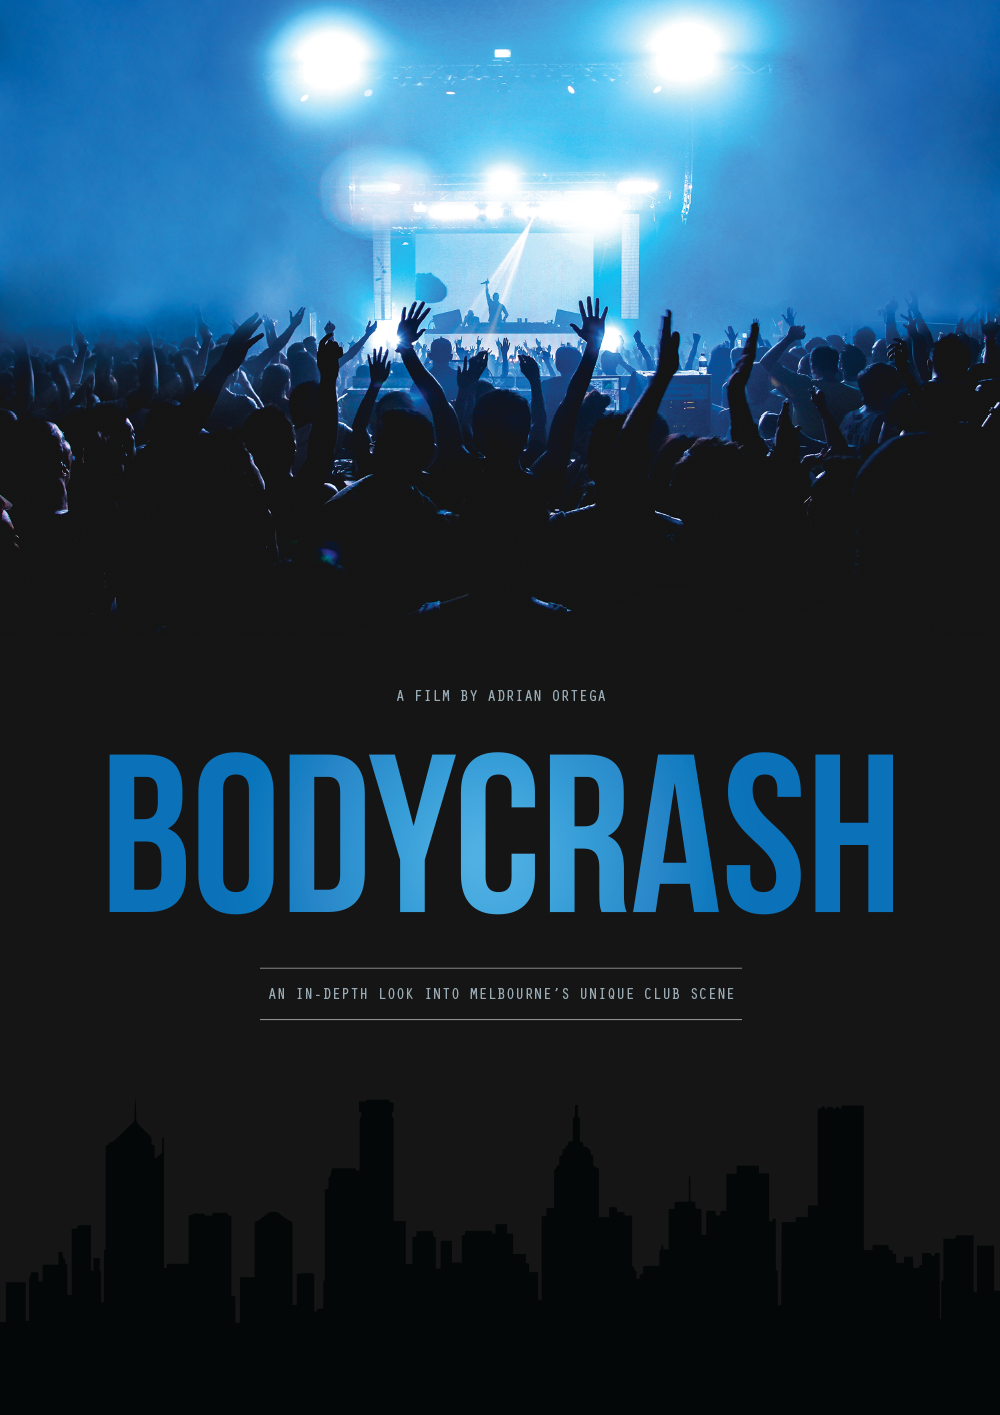 Bodycrash: A Look Into Melbourne's Unique Club Scene (2014)